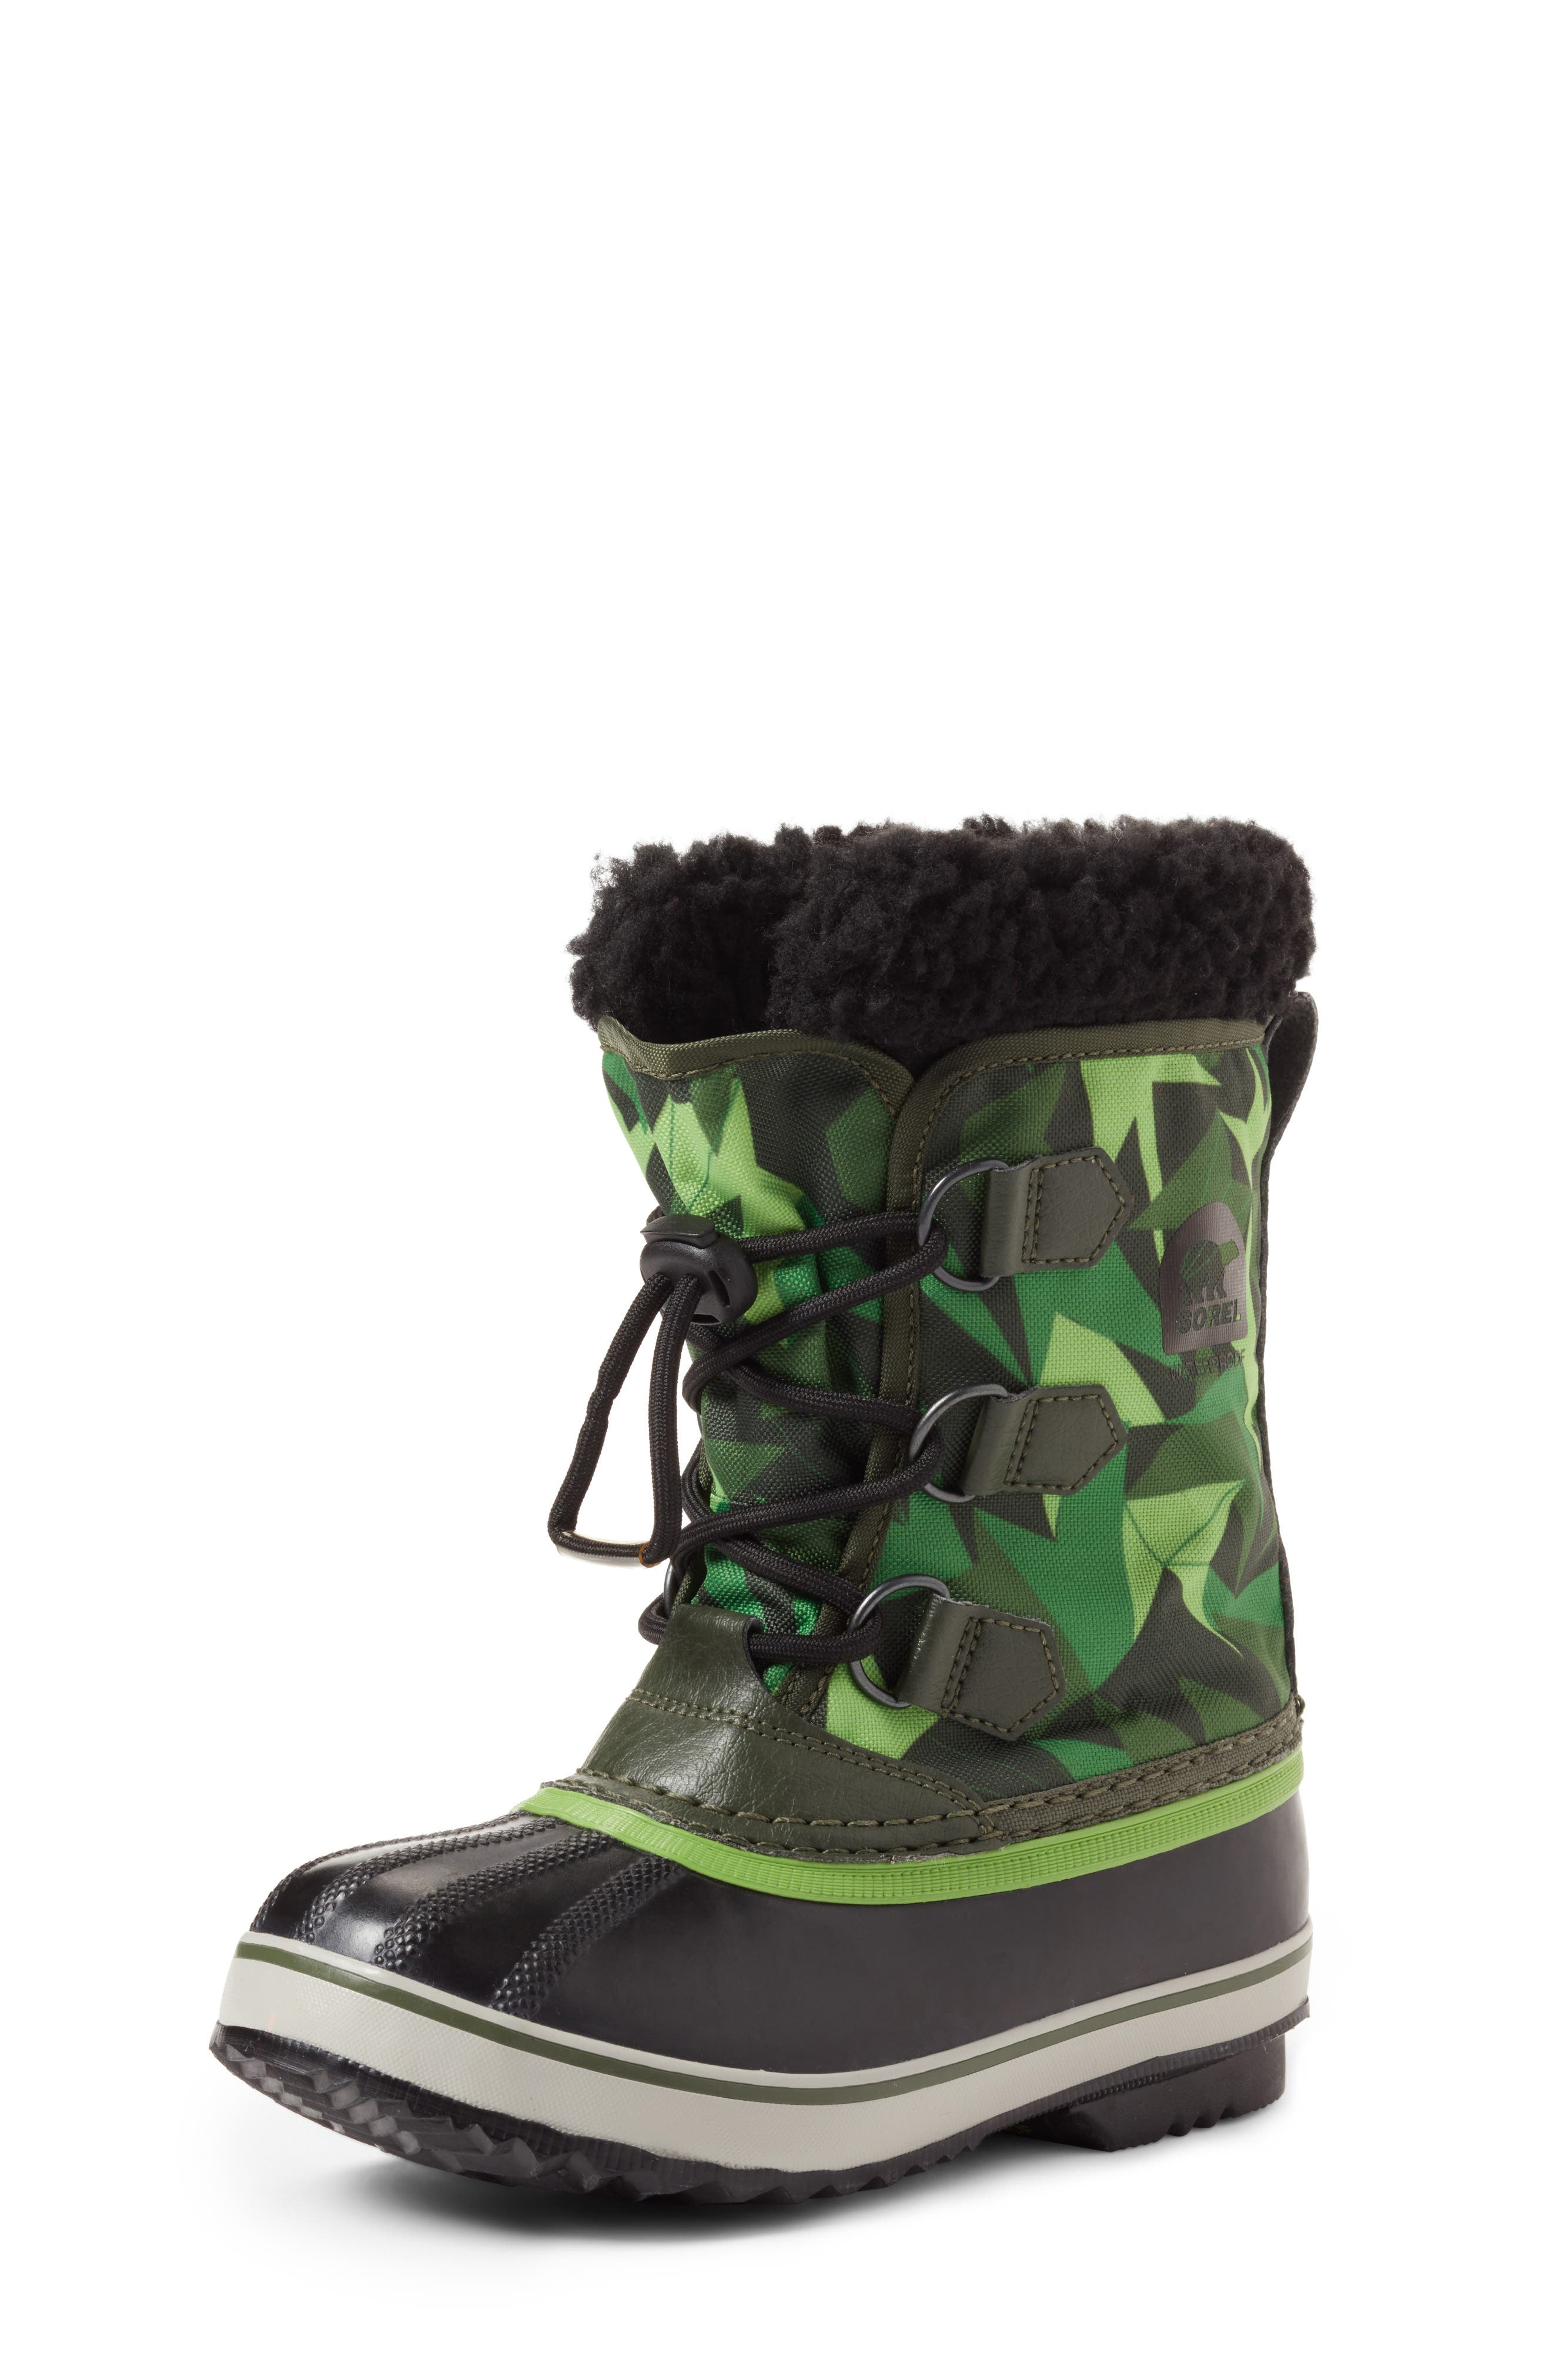 Yoot Pac Waterproof Insulated Snow Boot,                             Main thumbnail 1, color,